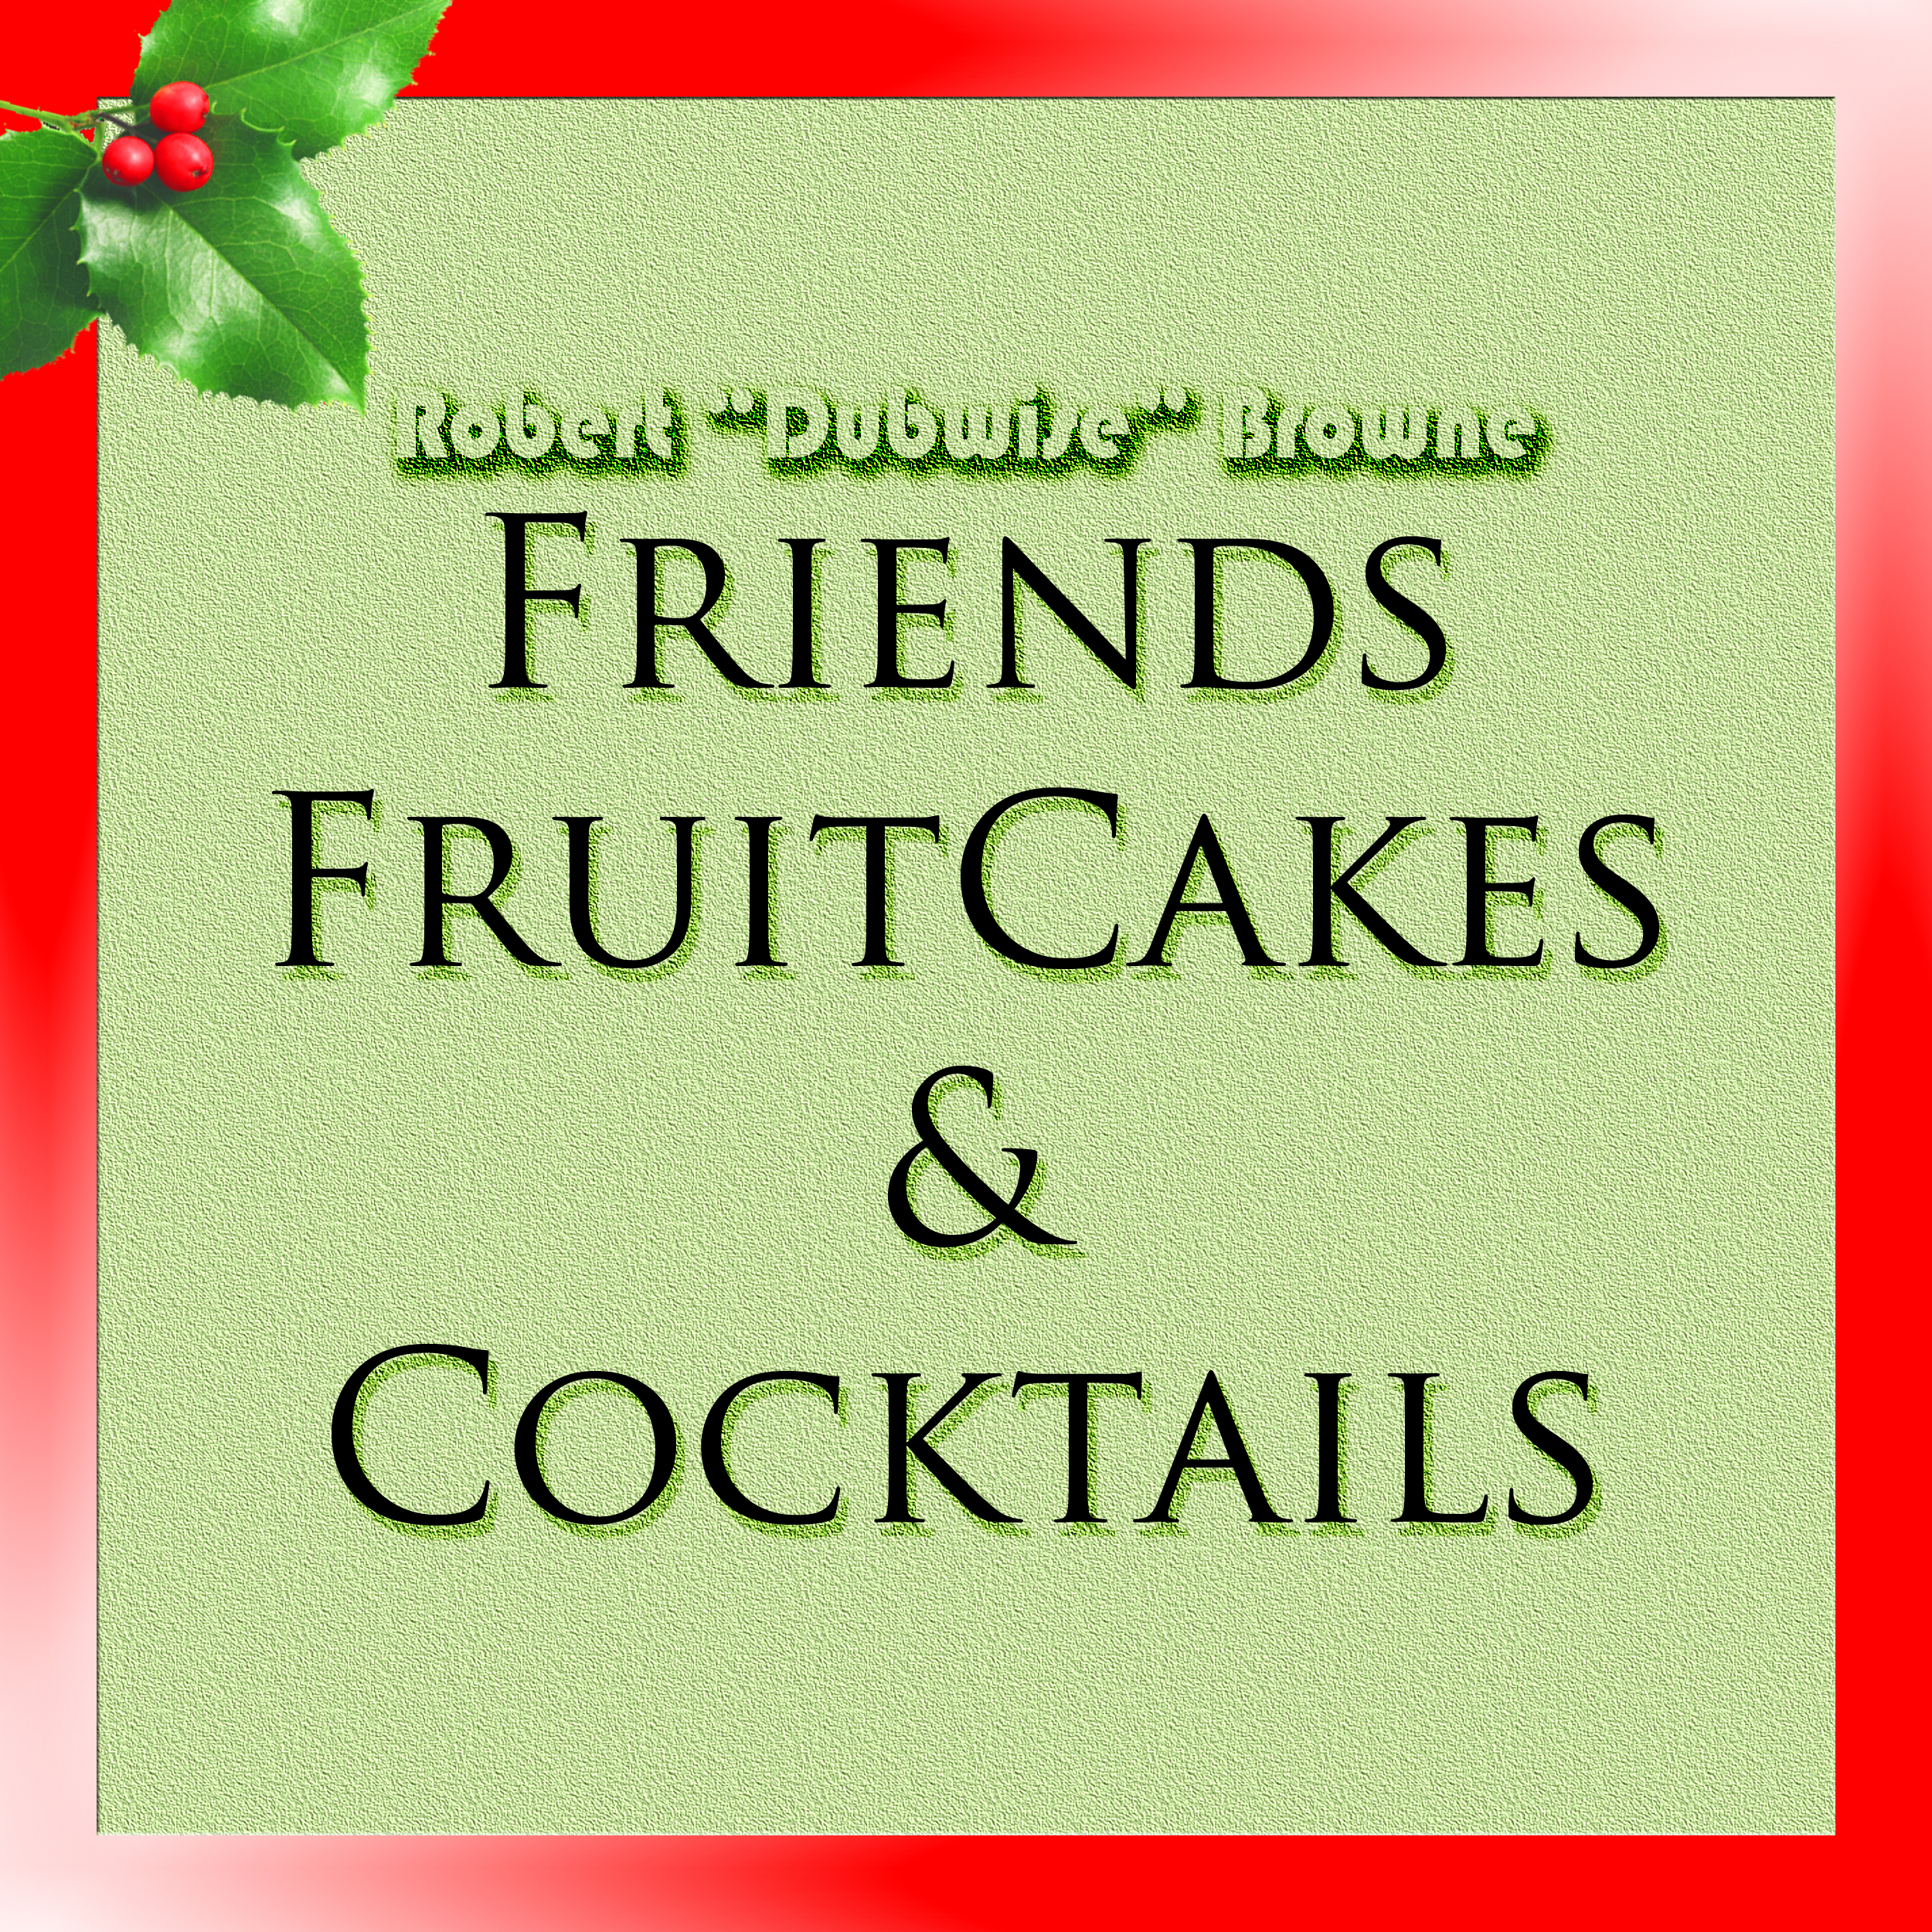 Friends, Fruitcakes & Cocktails Cover.jpg